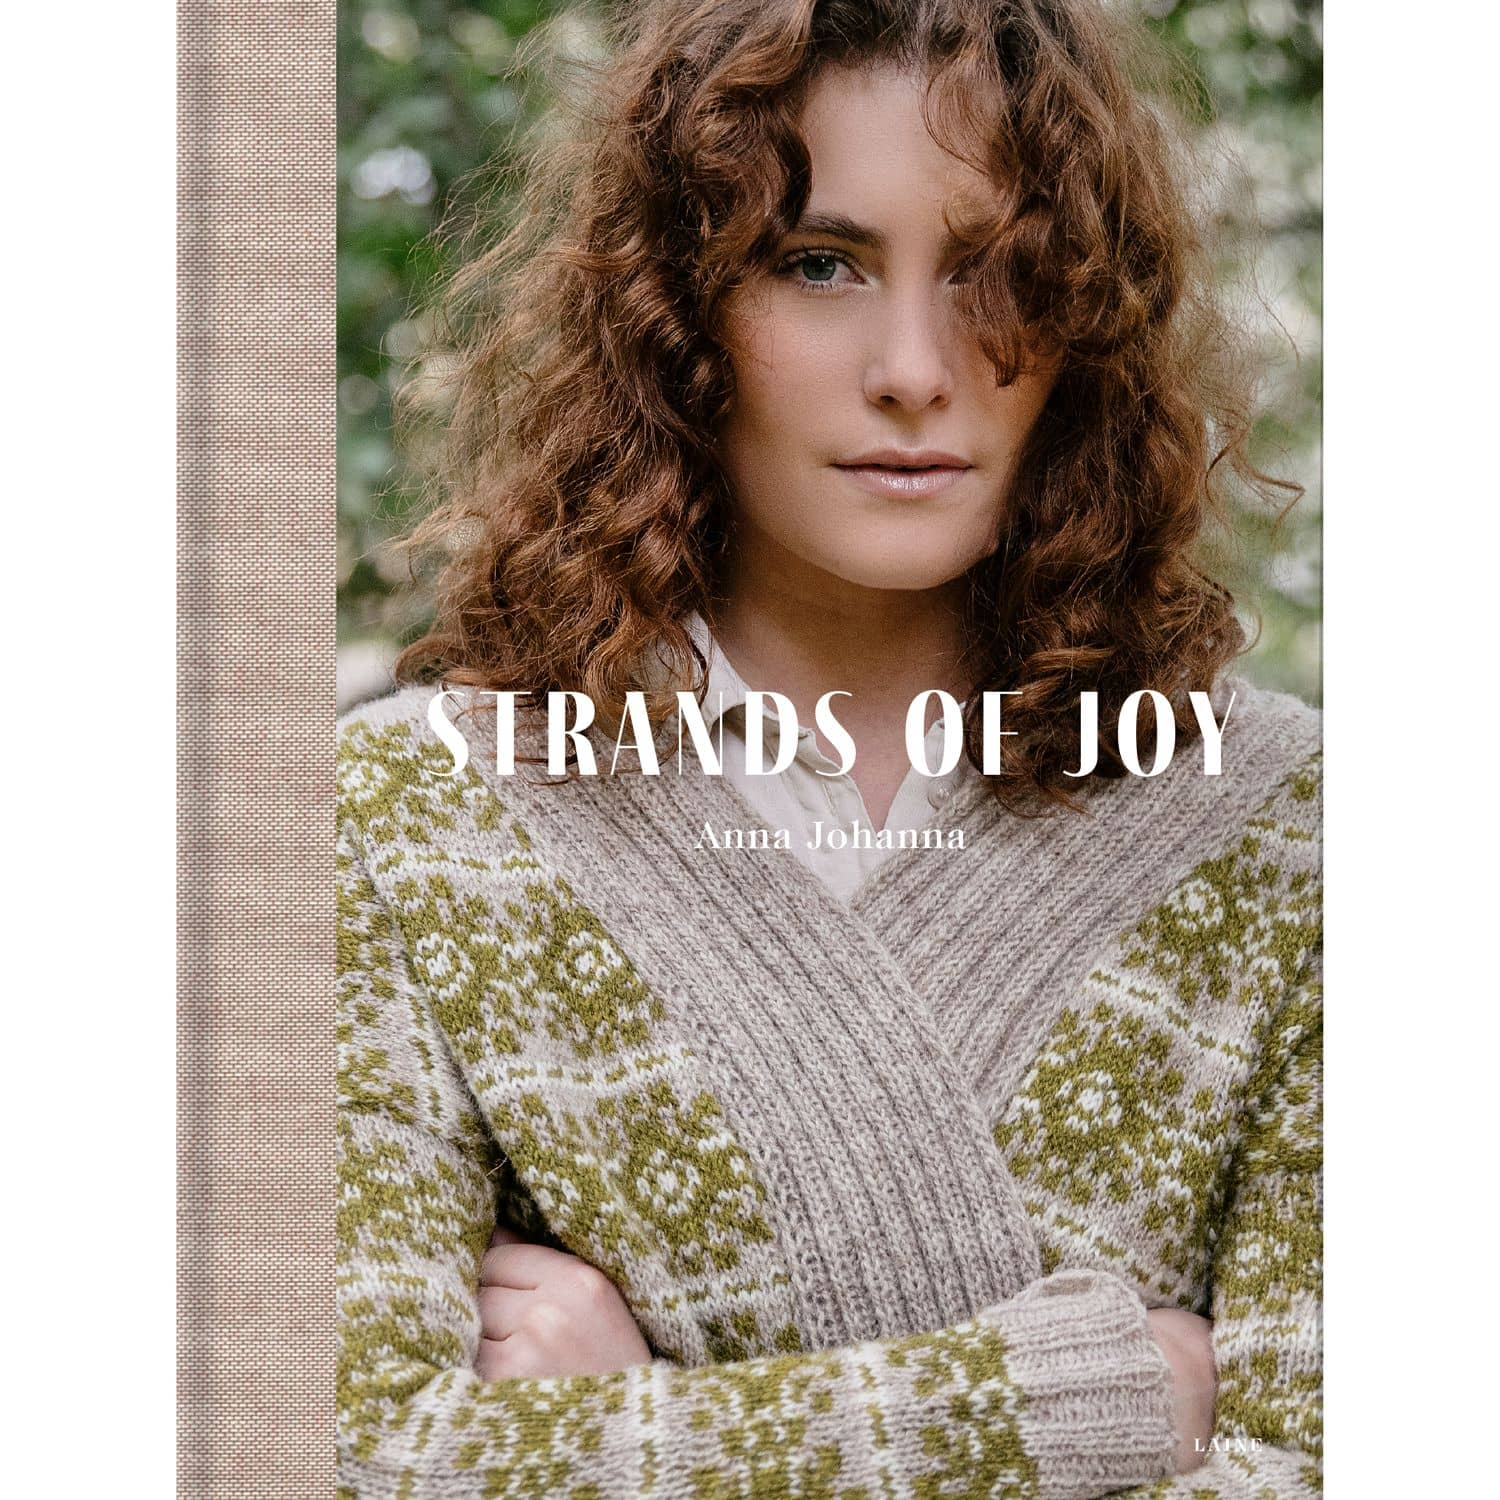 Strands of Joy - Anna Johanna | Yarn Worx